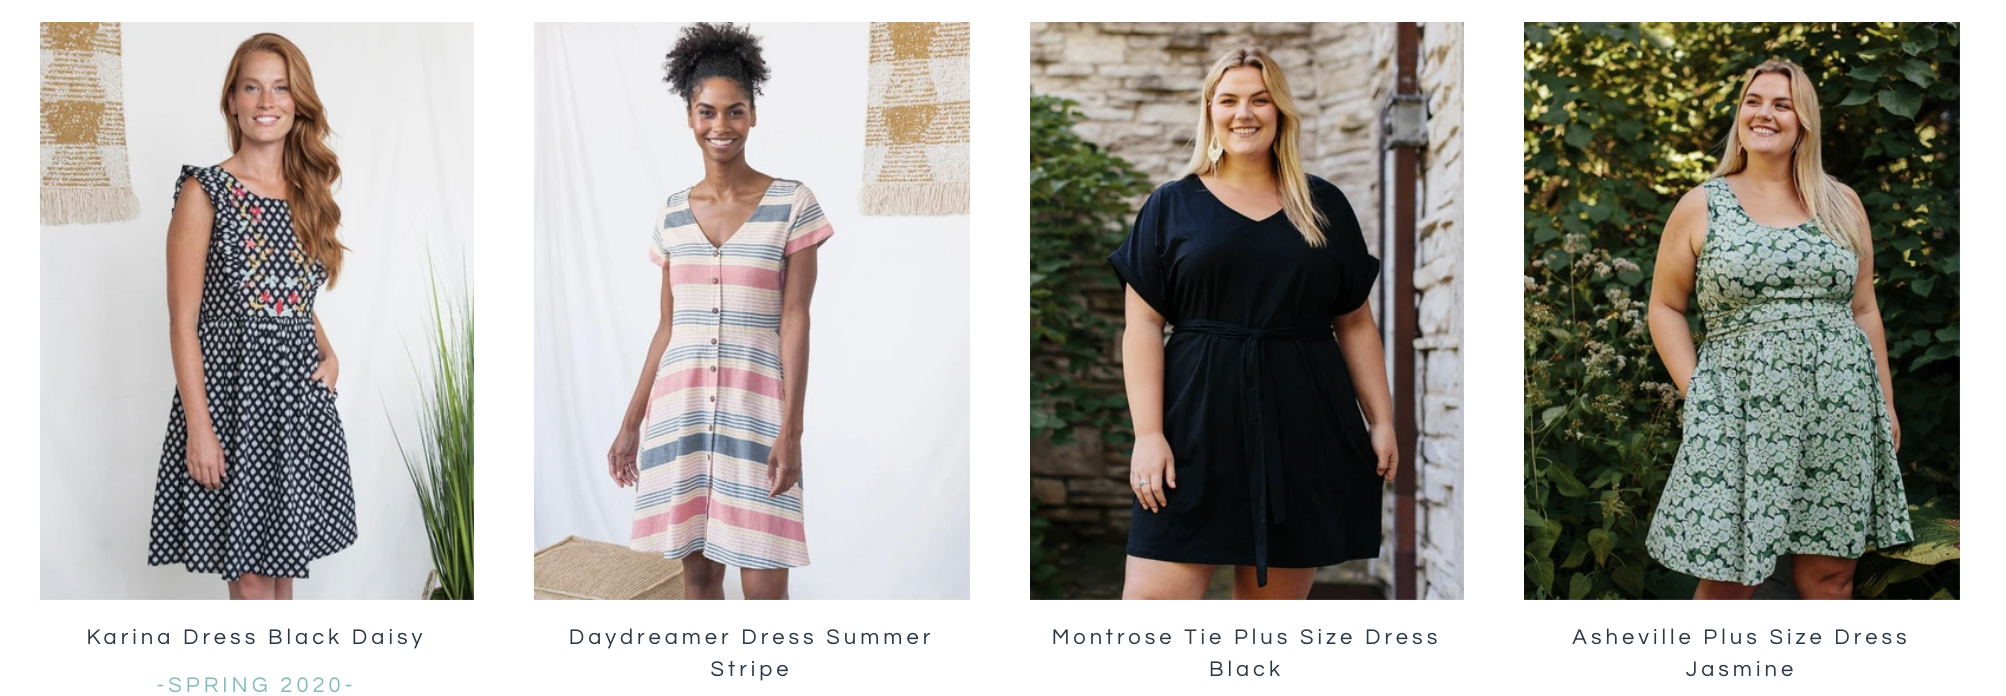 The typical summer dress is produced and designed to last just one or two summers. But eco-friendly dresses are made to last for many years to come! Even better? Their sustainable materials are usually more comfortable on your skin and on the environment. #ecofashion #sustainablefashion #ecofriendlydresses